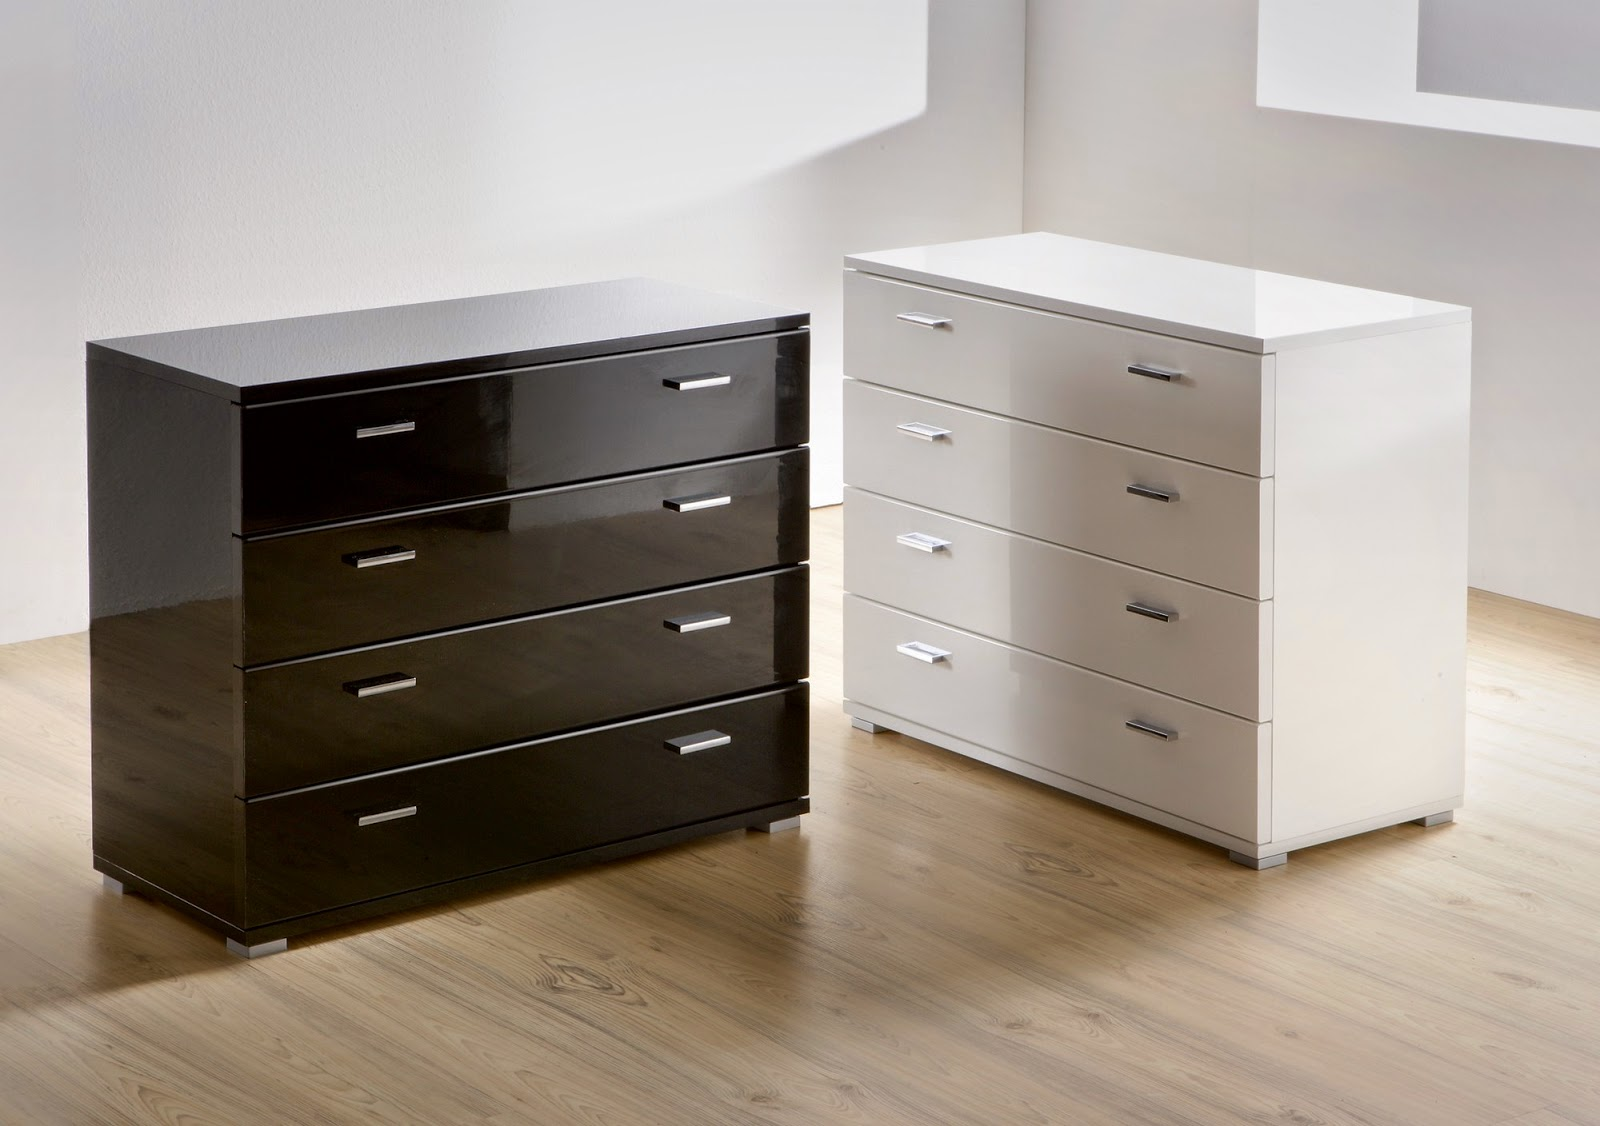 commode design gaeaforms 01 storage commodes et buffets design commode ...